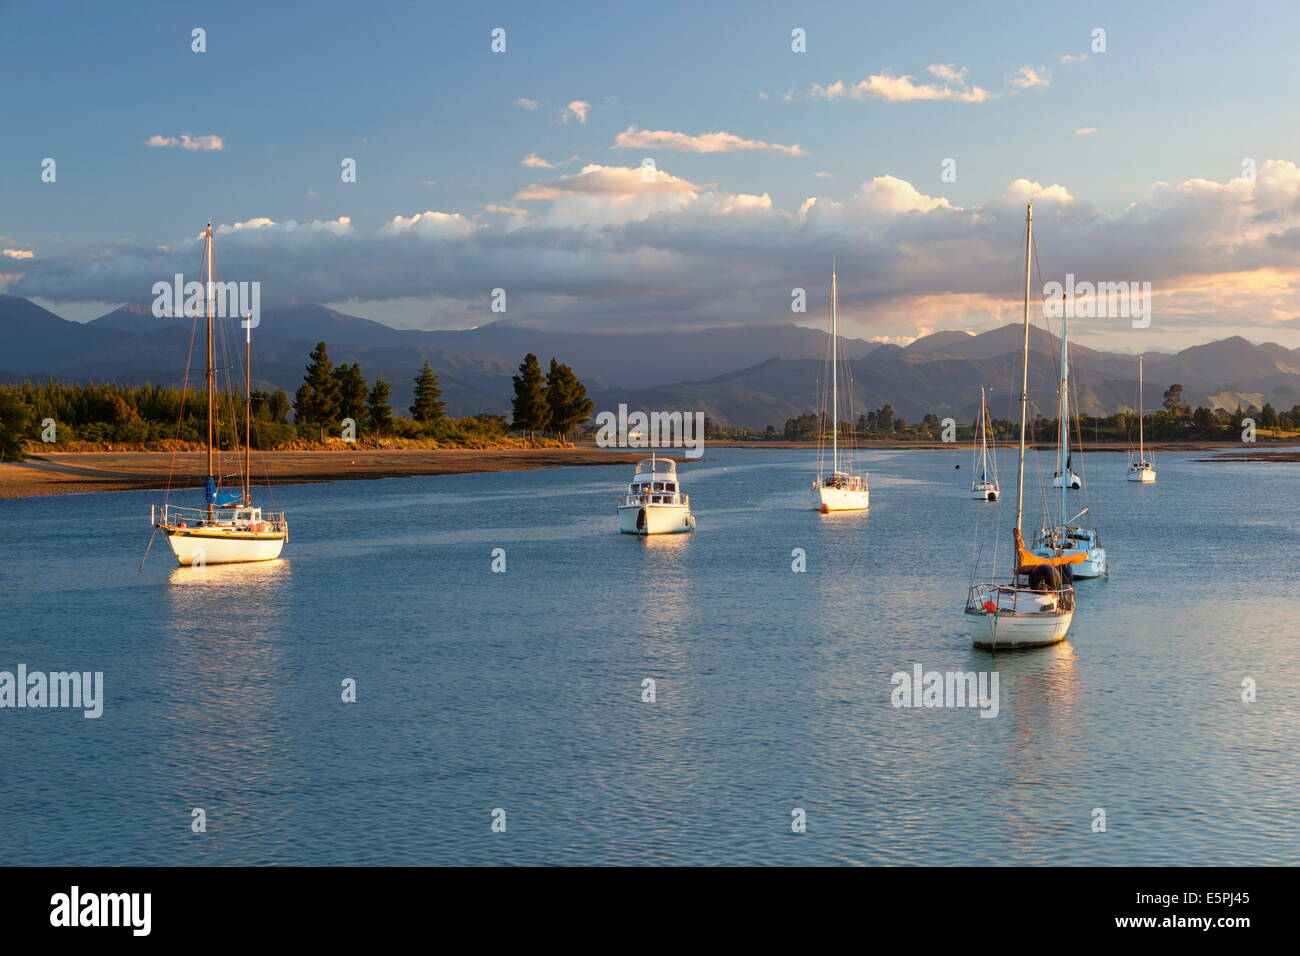 Yachts anchored in estuary, Mapua, Nelson region, South Island, New Zealand, Pacific - Stock Image